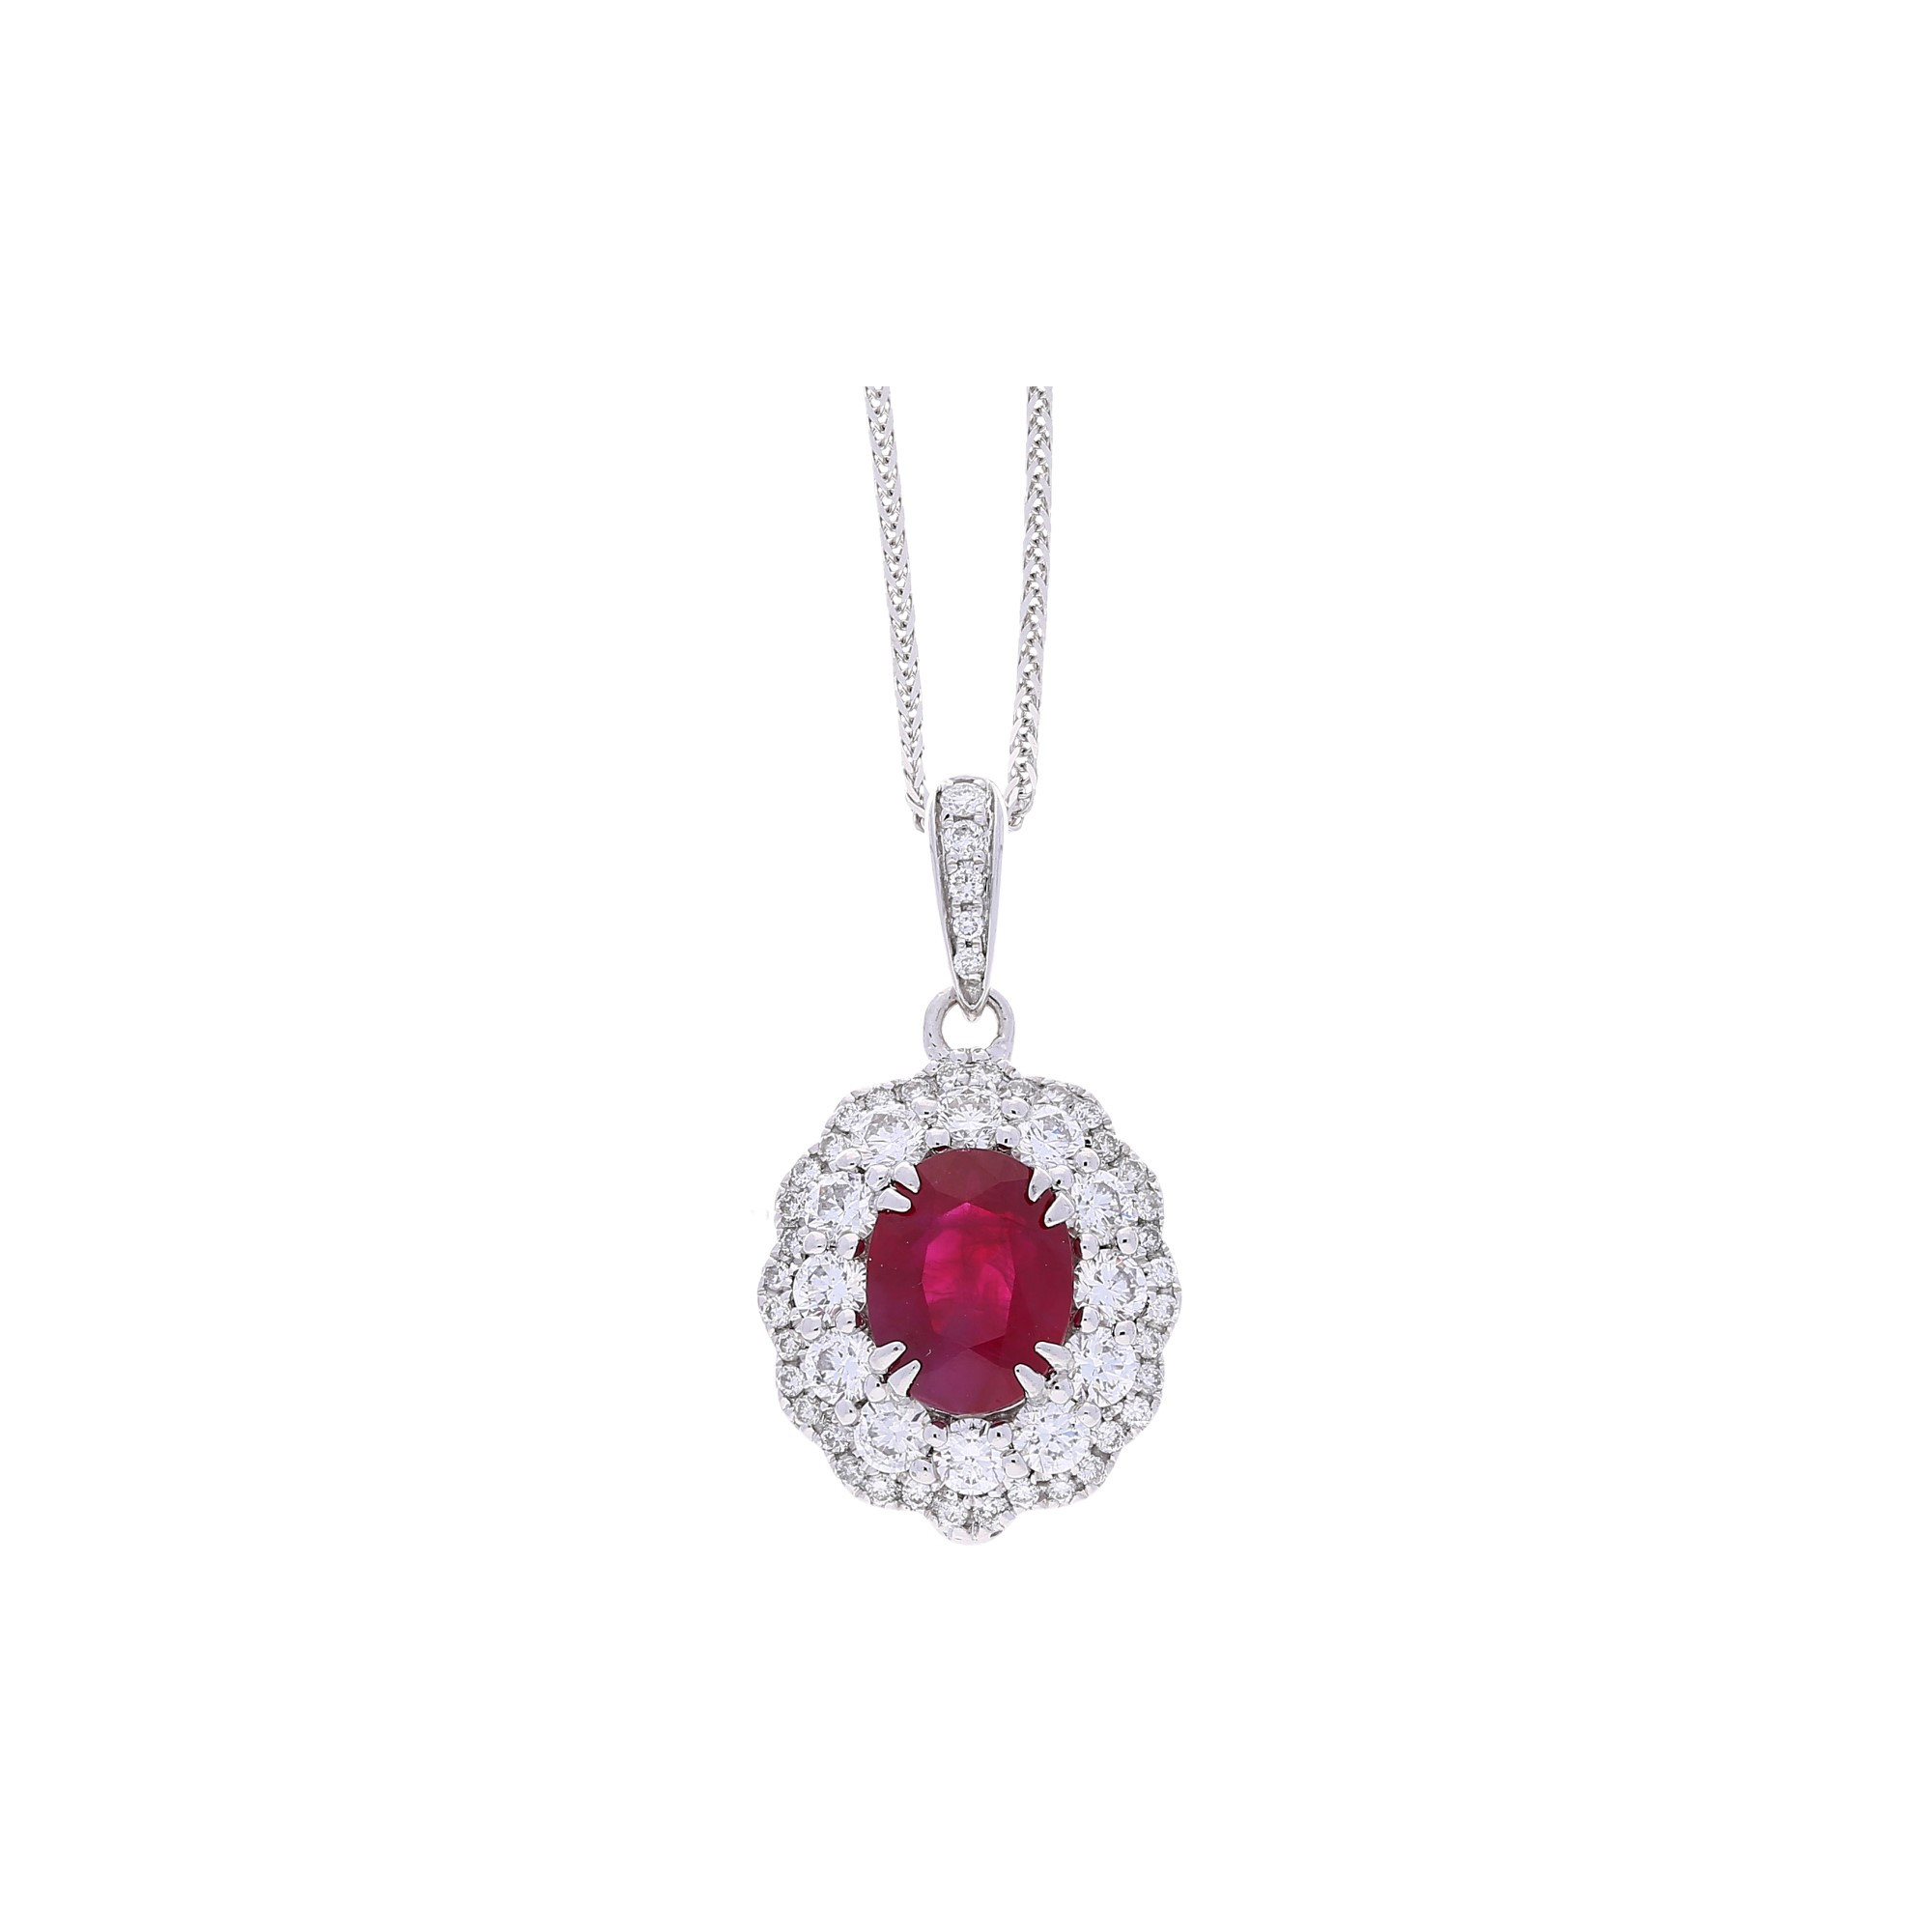 Winsor Bishop Ruby Oval Diamond Cluster Pendant Without Chain With Regard To 2019 Ruby And Diamond Cluster Necklaces (View 25 of 25)